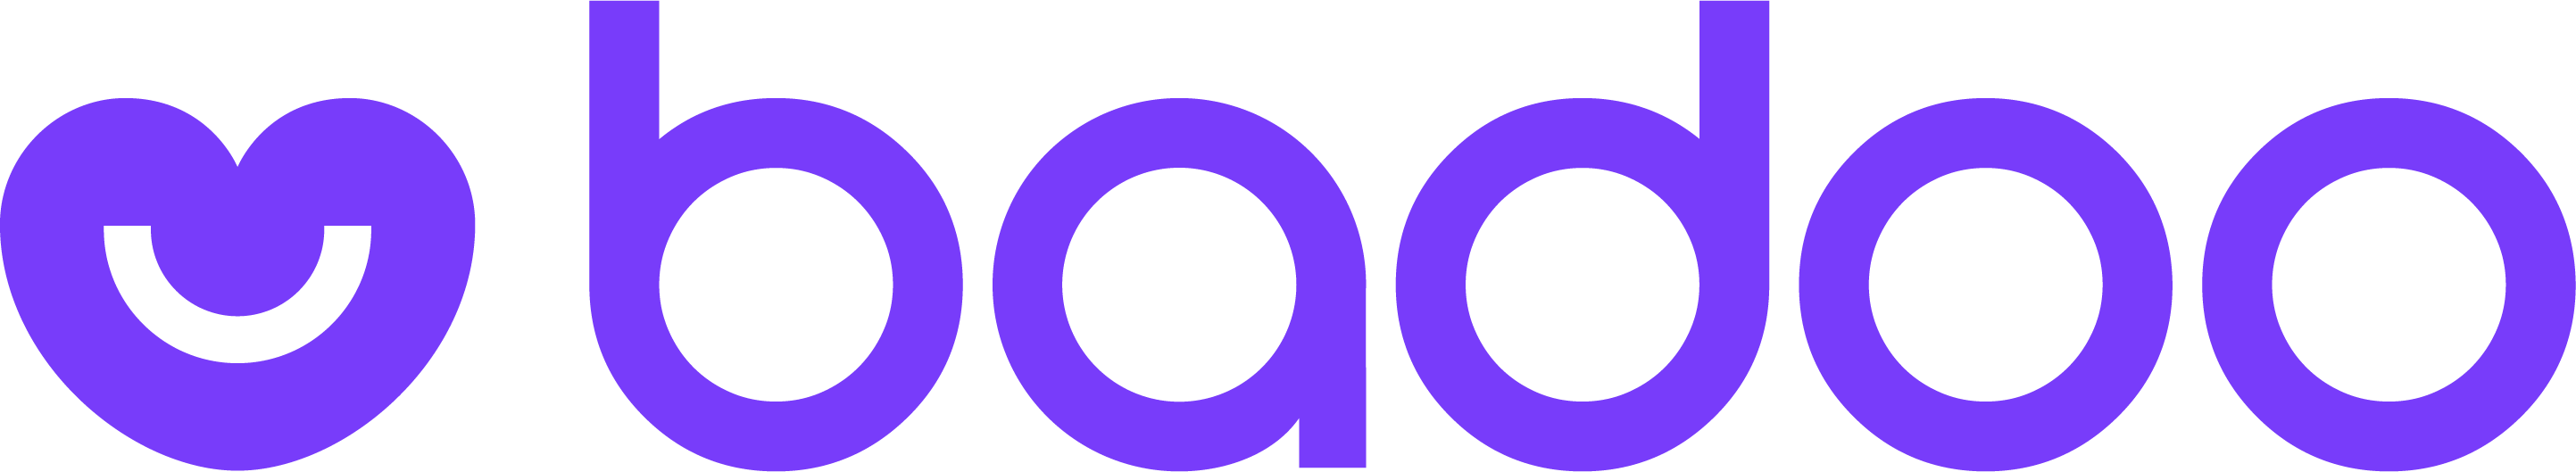 Badoo Review March 2021 - DatingScout.com